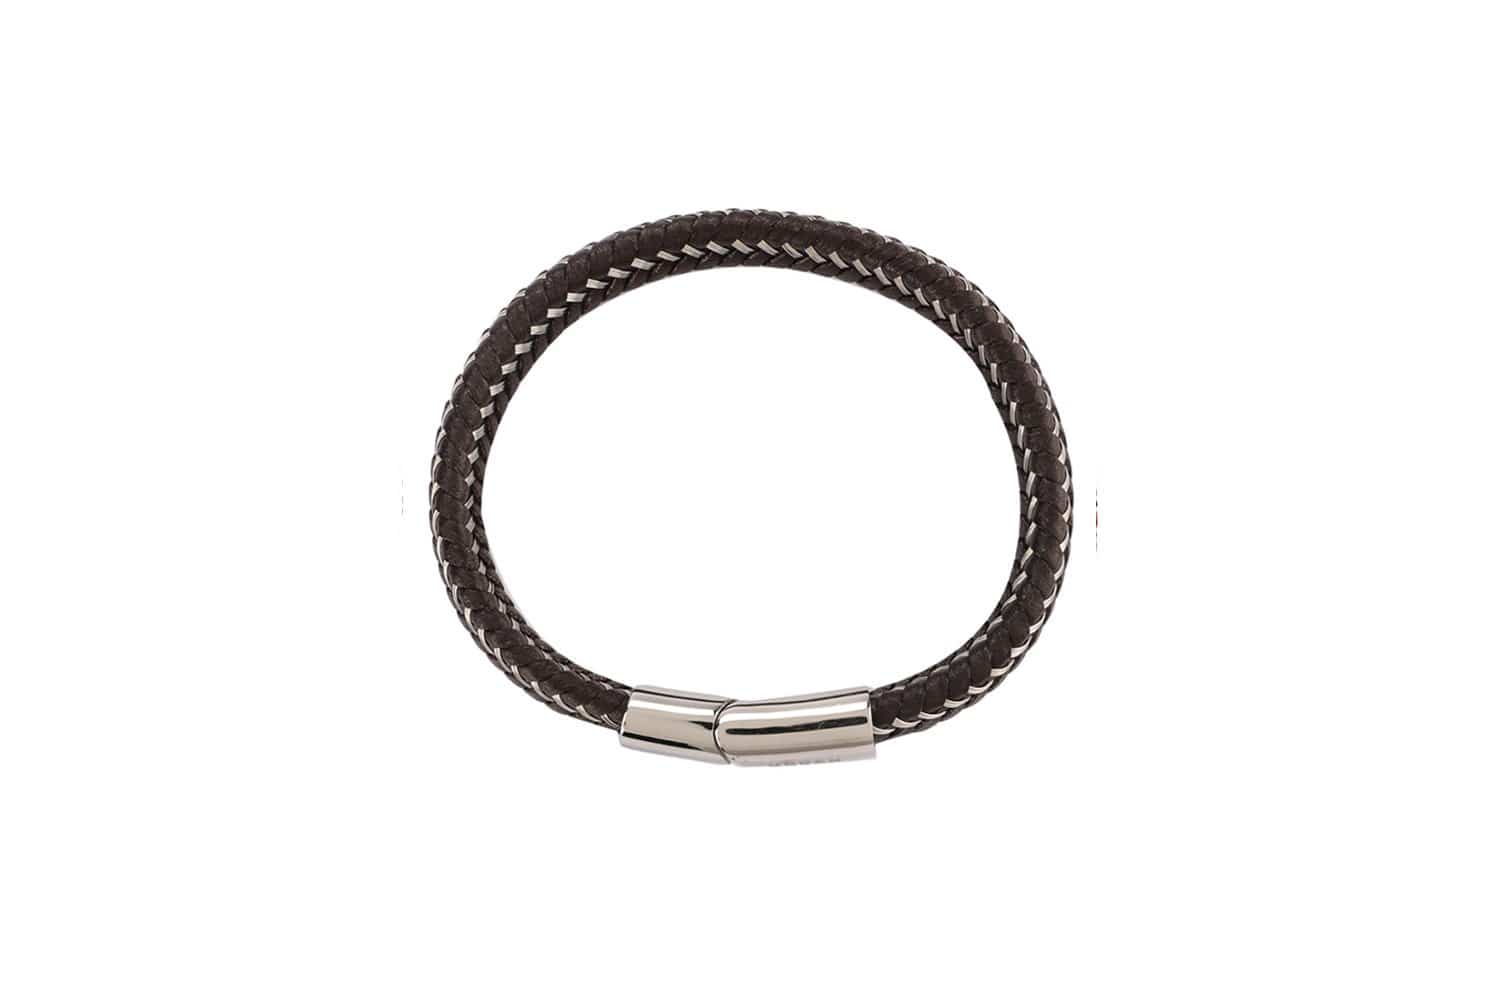 Multi-Strand Woven Leather Bracelet - Brown Bracelets - Urban State Indonesia